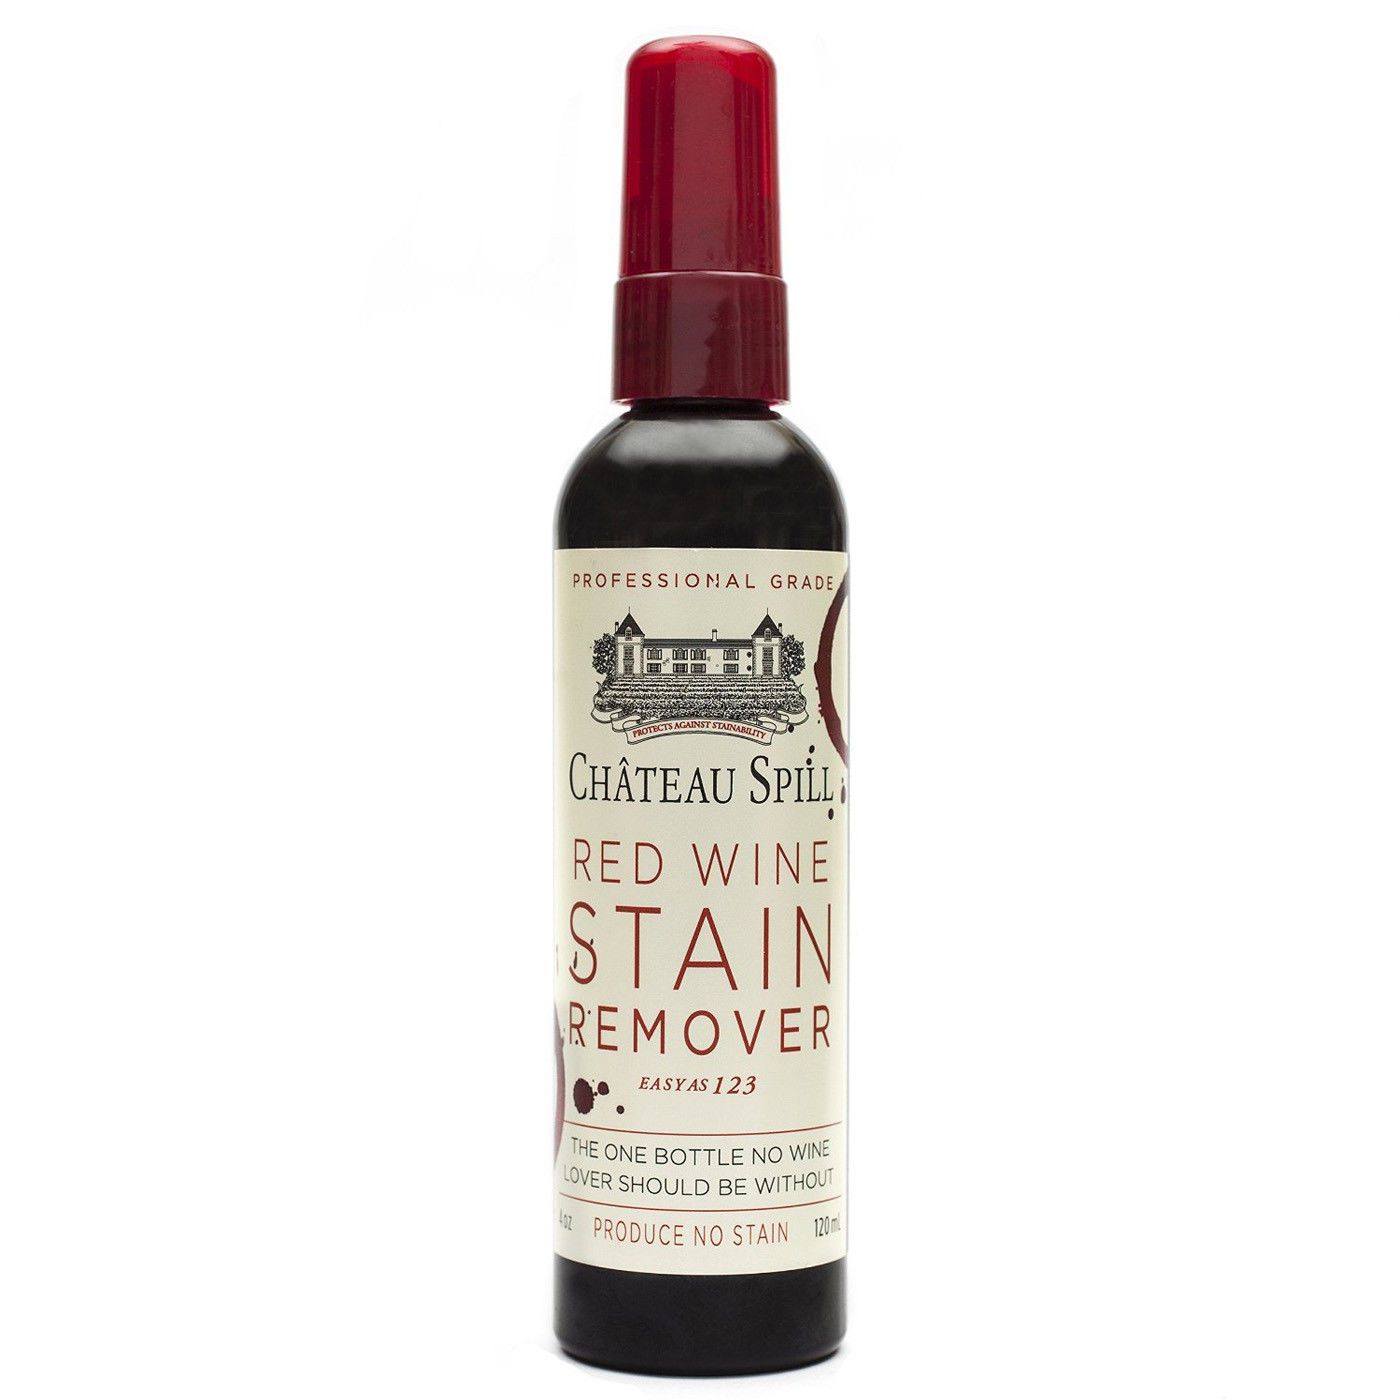 7 95 Chateau Spill Red Wine Stain Remover 4 Ounce Spray Bottle 120ml Ebay Home Garden Wine Stain Remover Red Wine Stains